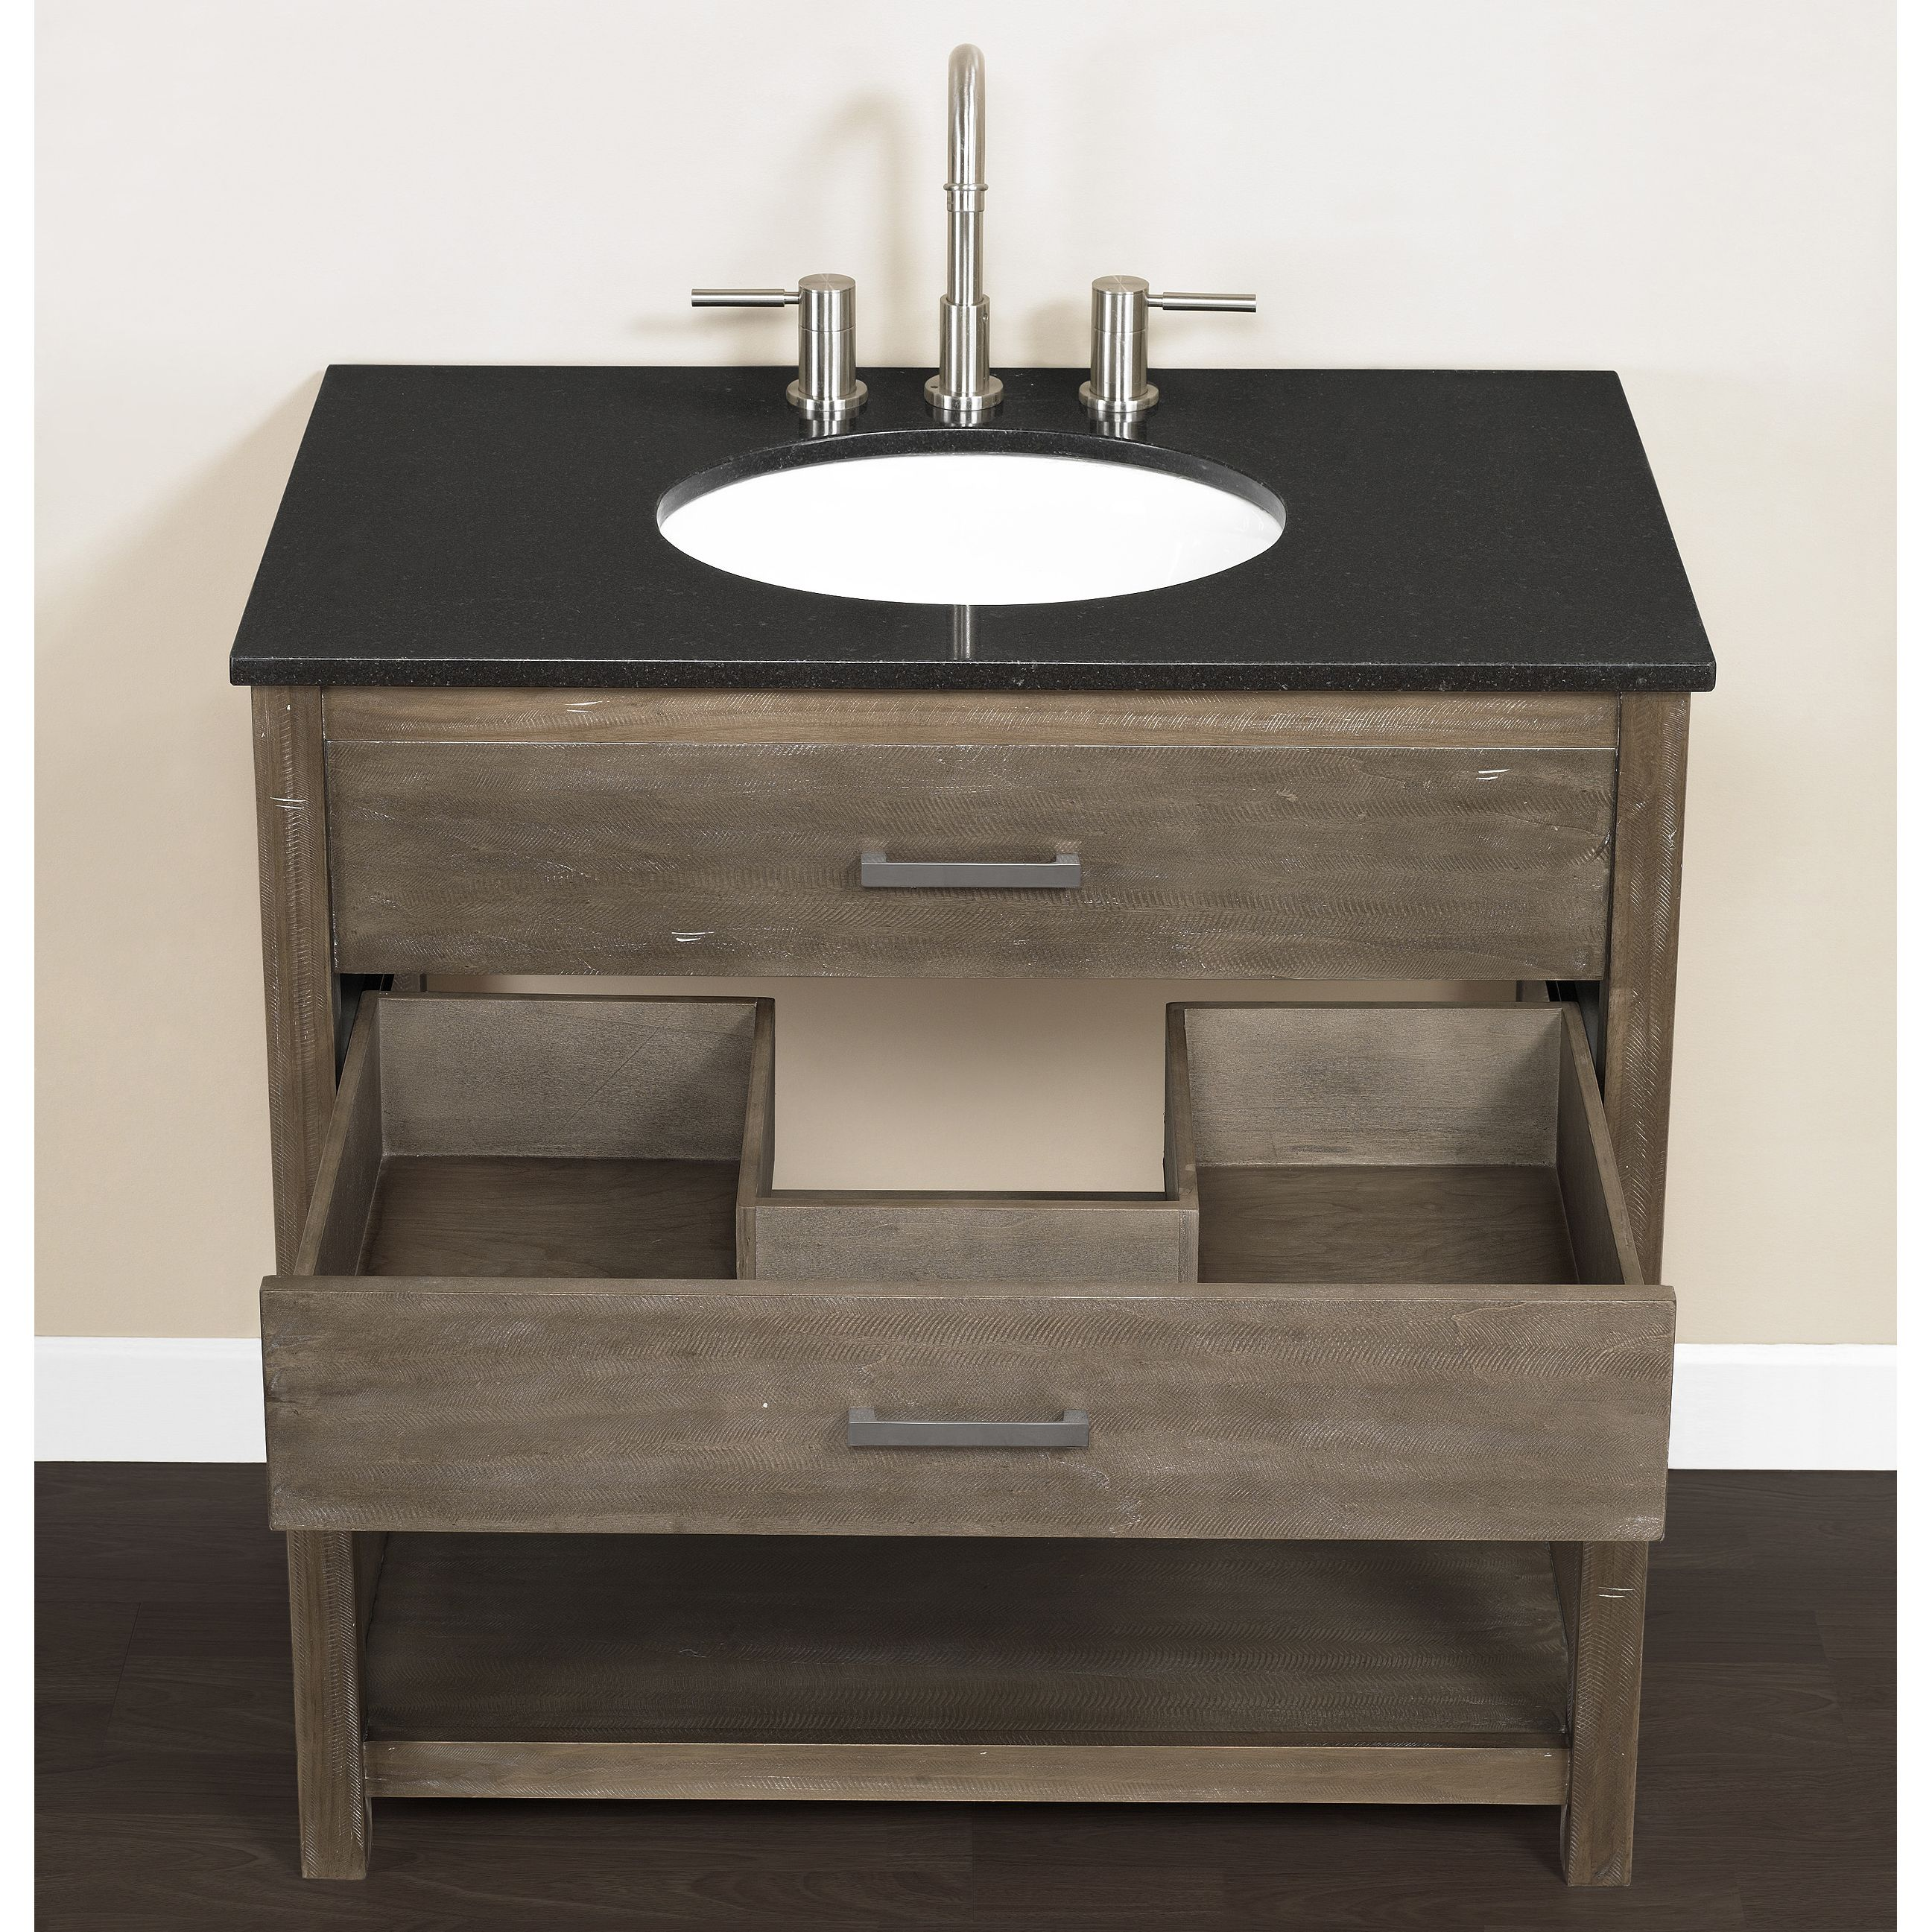 vanity for double than less picture sink single bathroom vanities small inspirational of